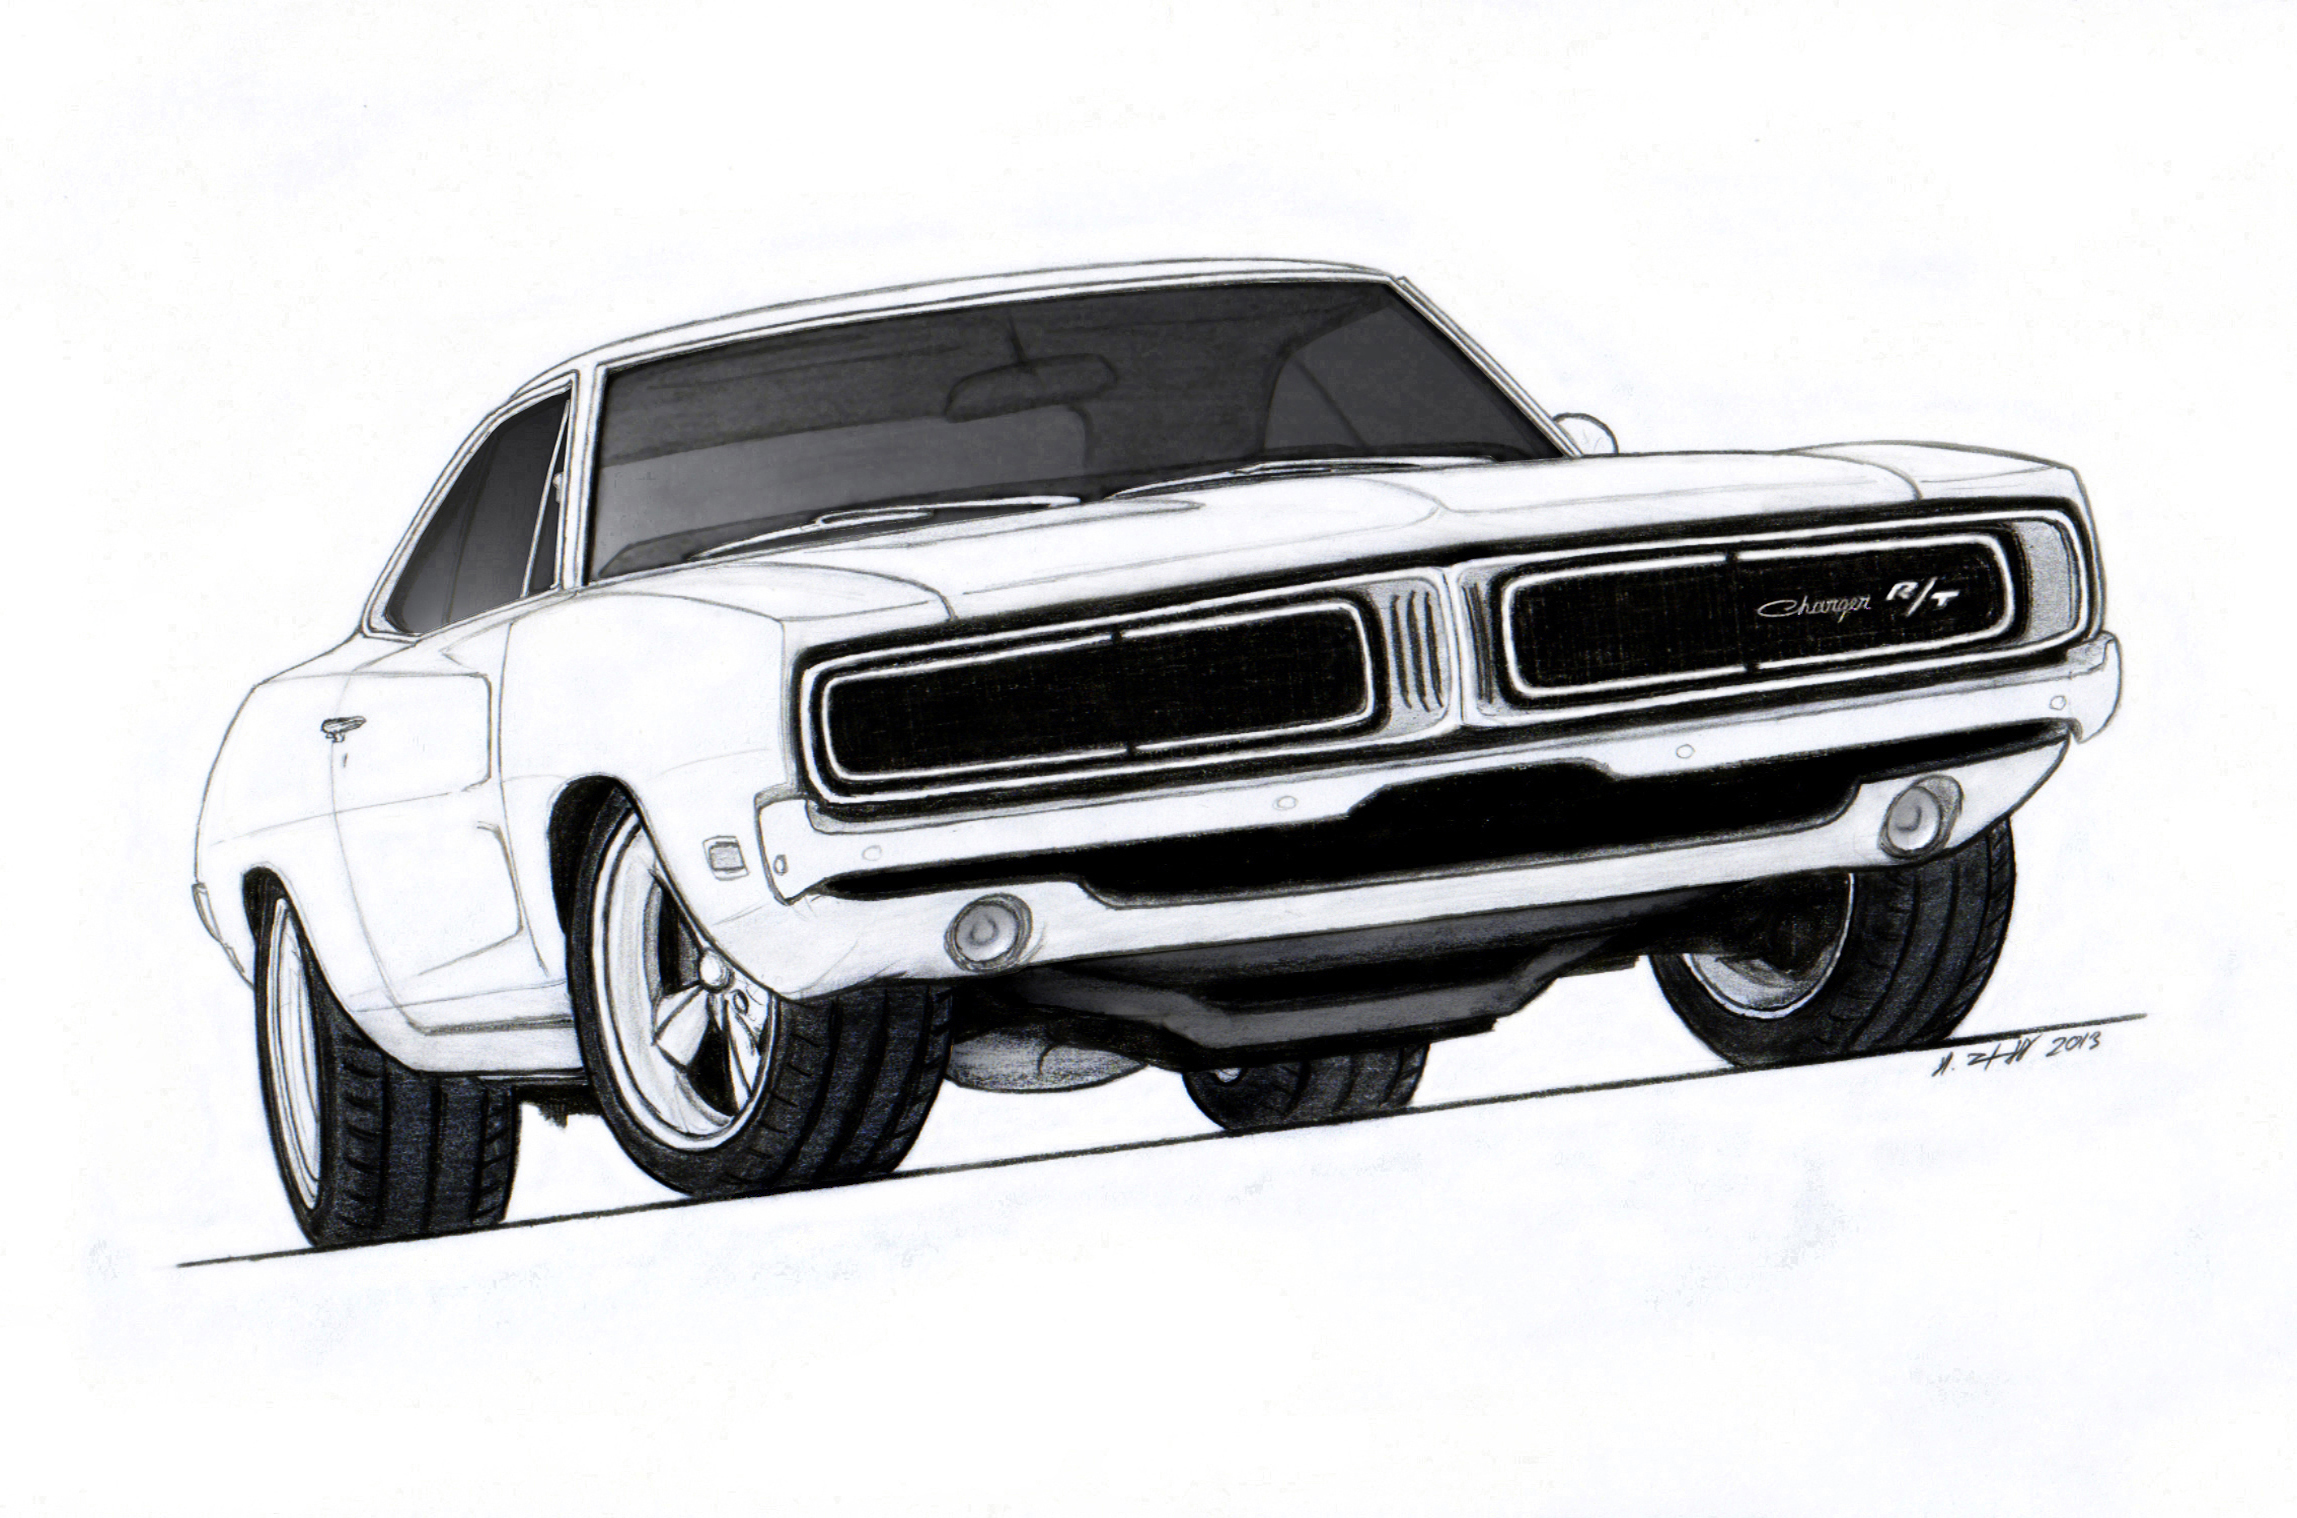 1970 dodge dart clipart clipart images gallery for free.